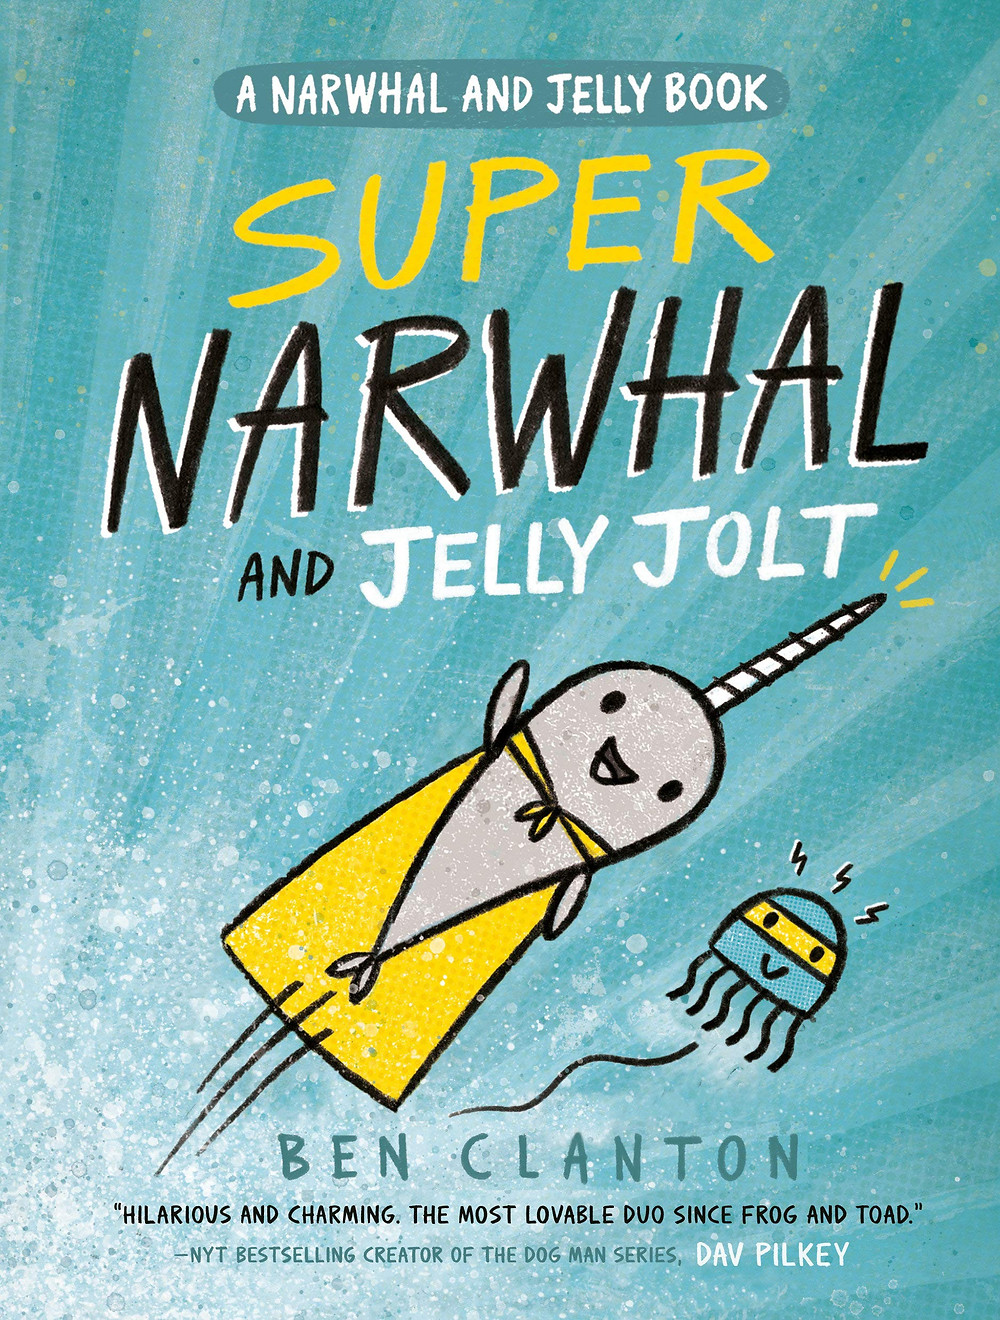 A narwhal swims through the sea wearing a yellow cape. Beside the narwhal, a jelly fish swims wearing a yellow mask.